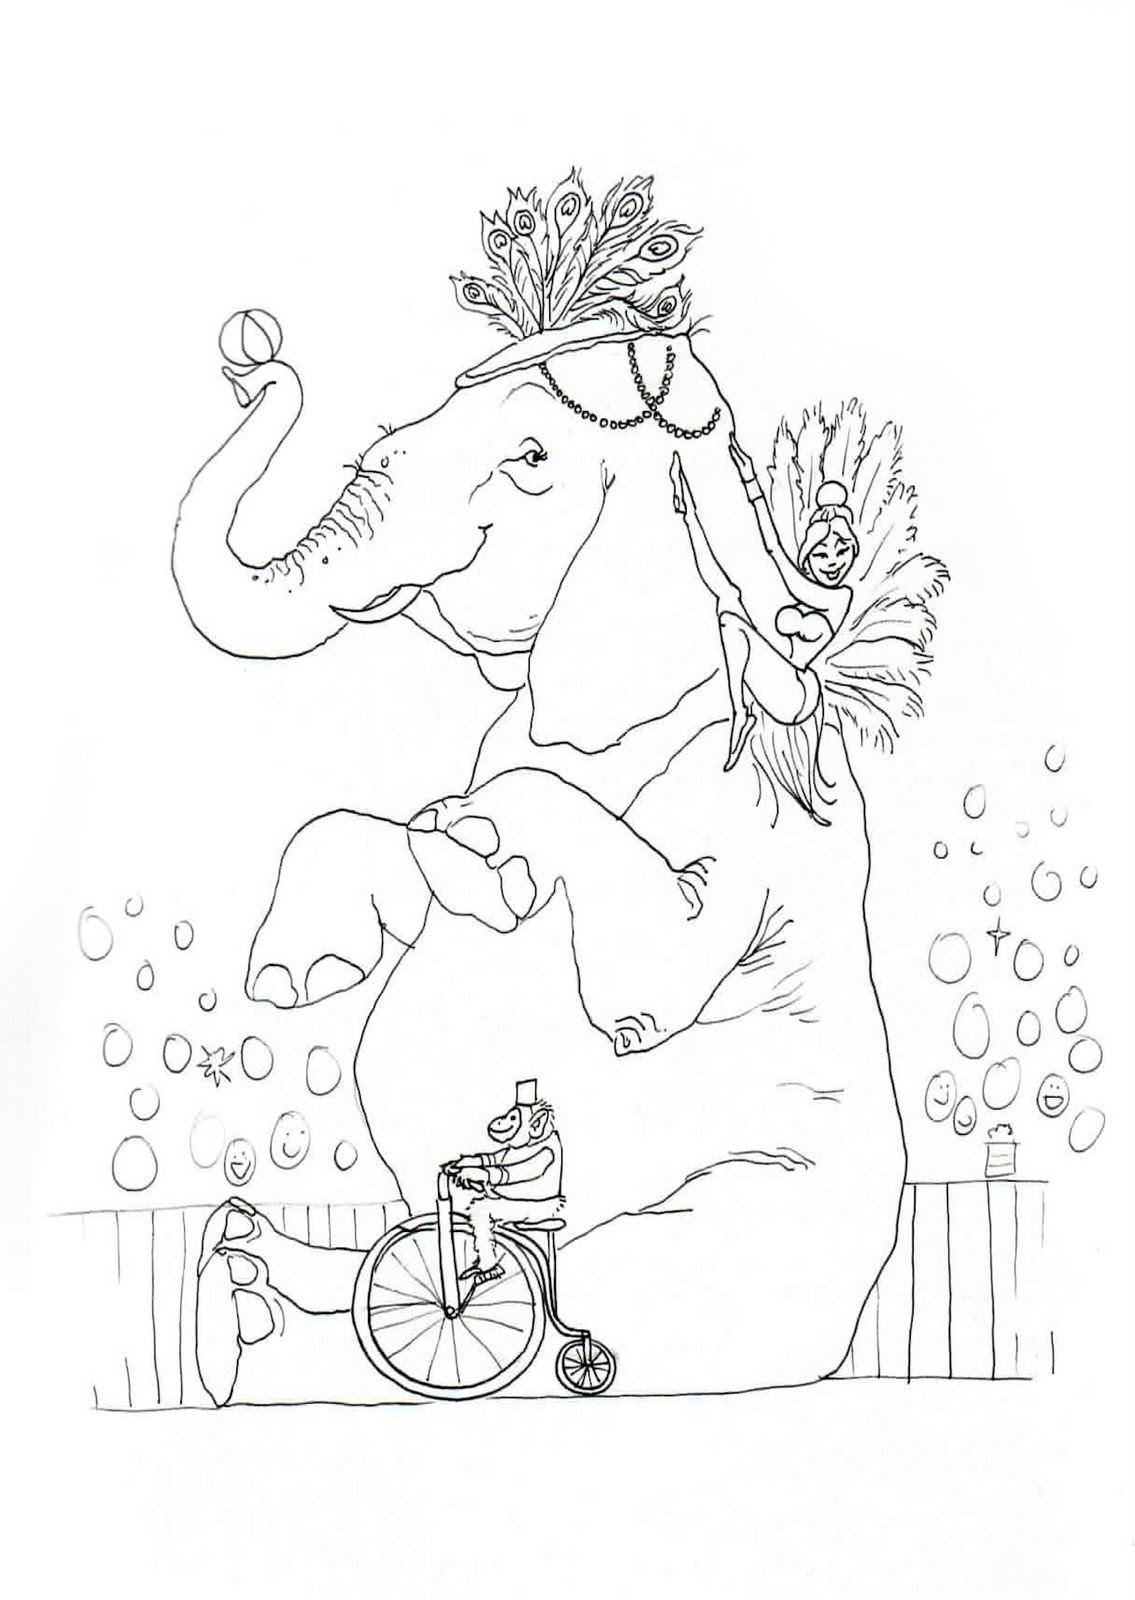 waldo coloring pages - photo#18